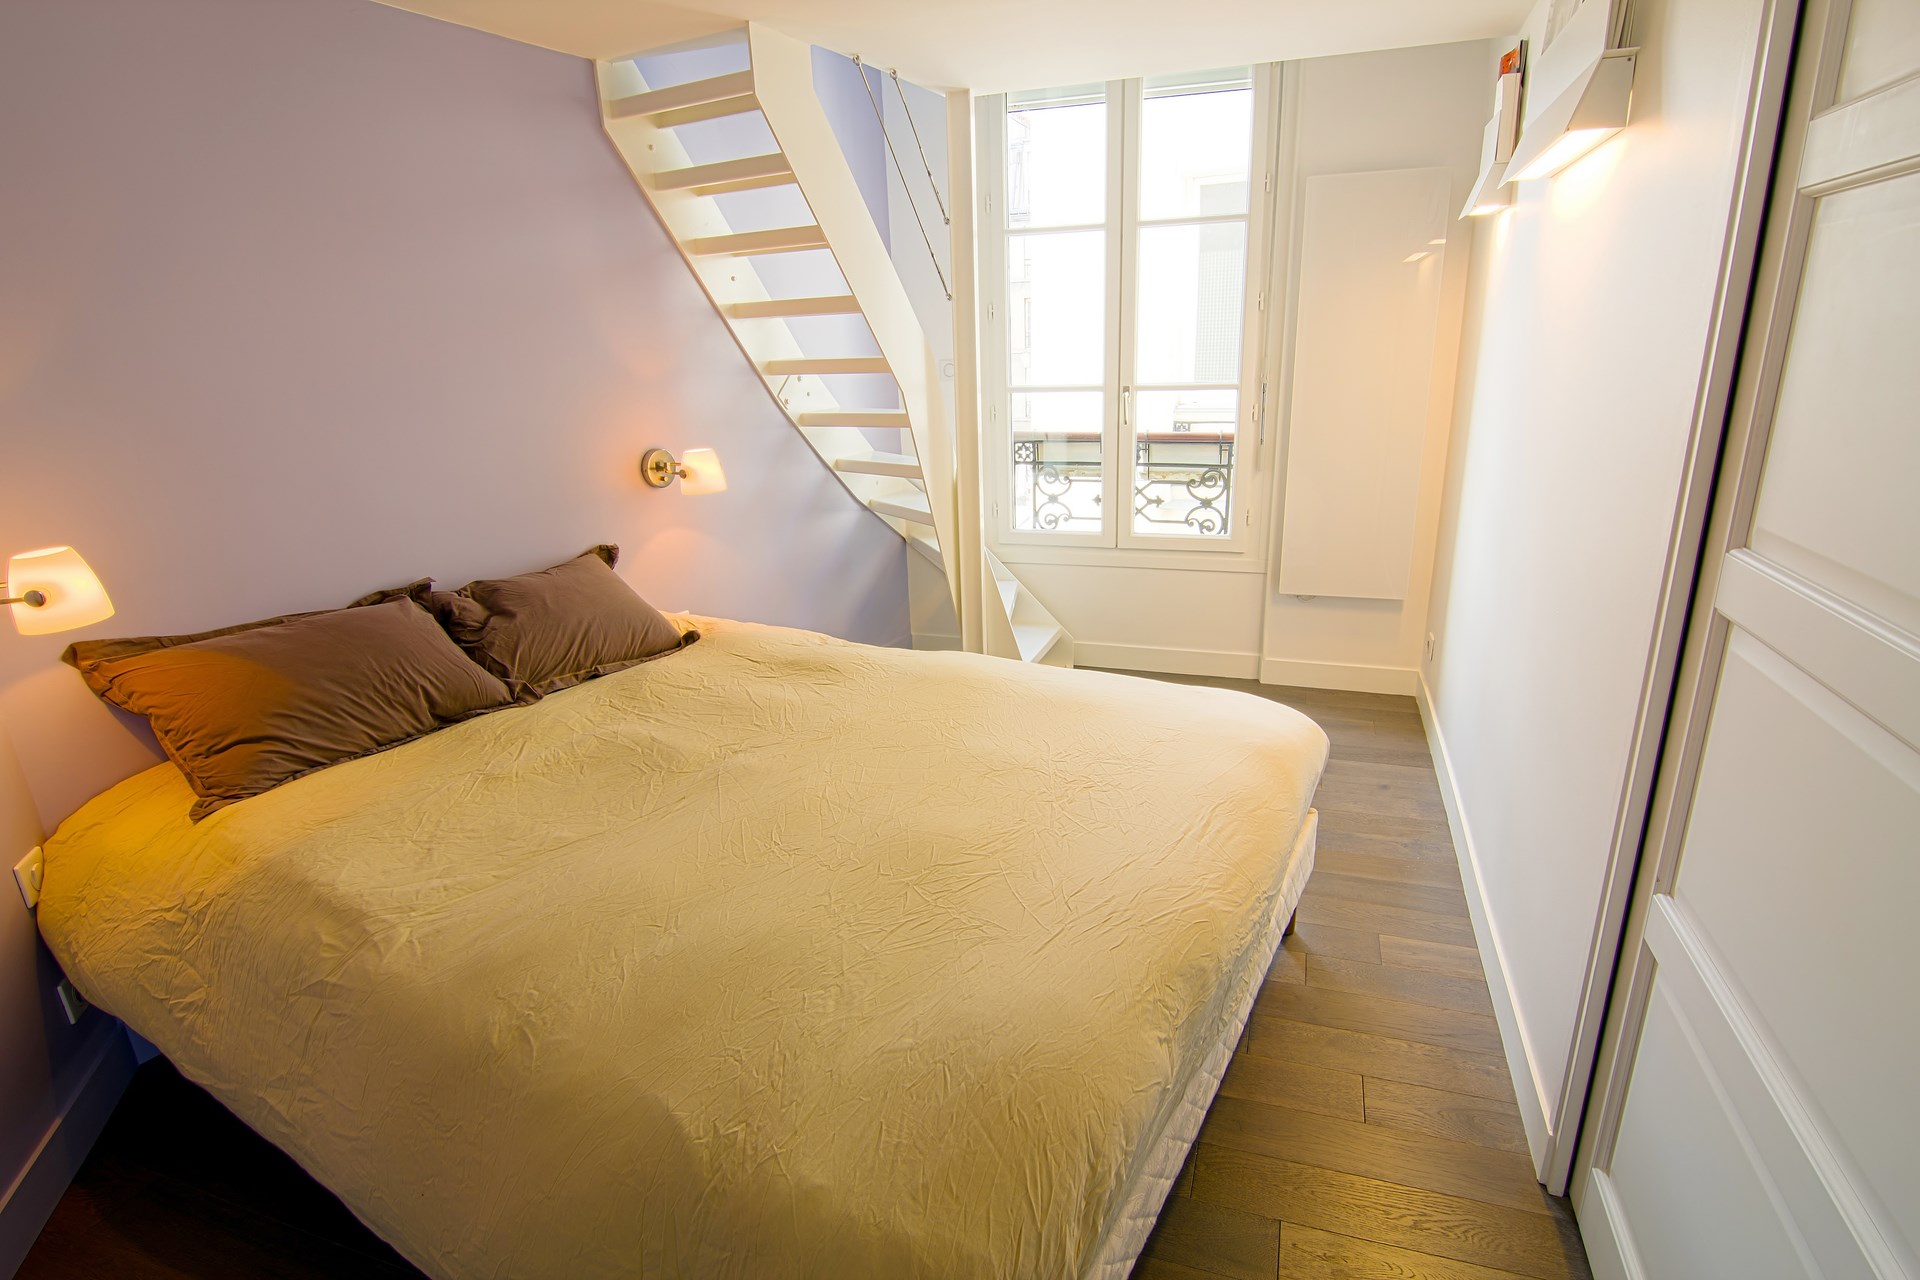 Am nagement appartement sous combles baign de lumi re paris for Amenagement chambre comble